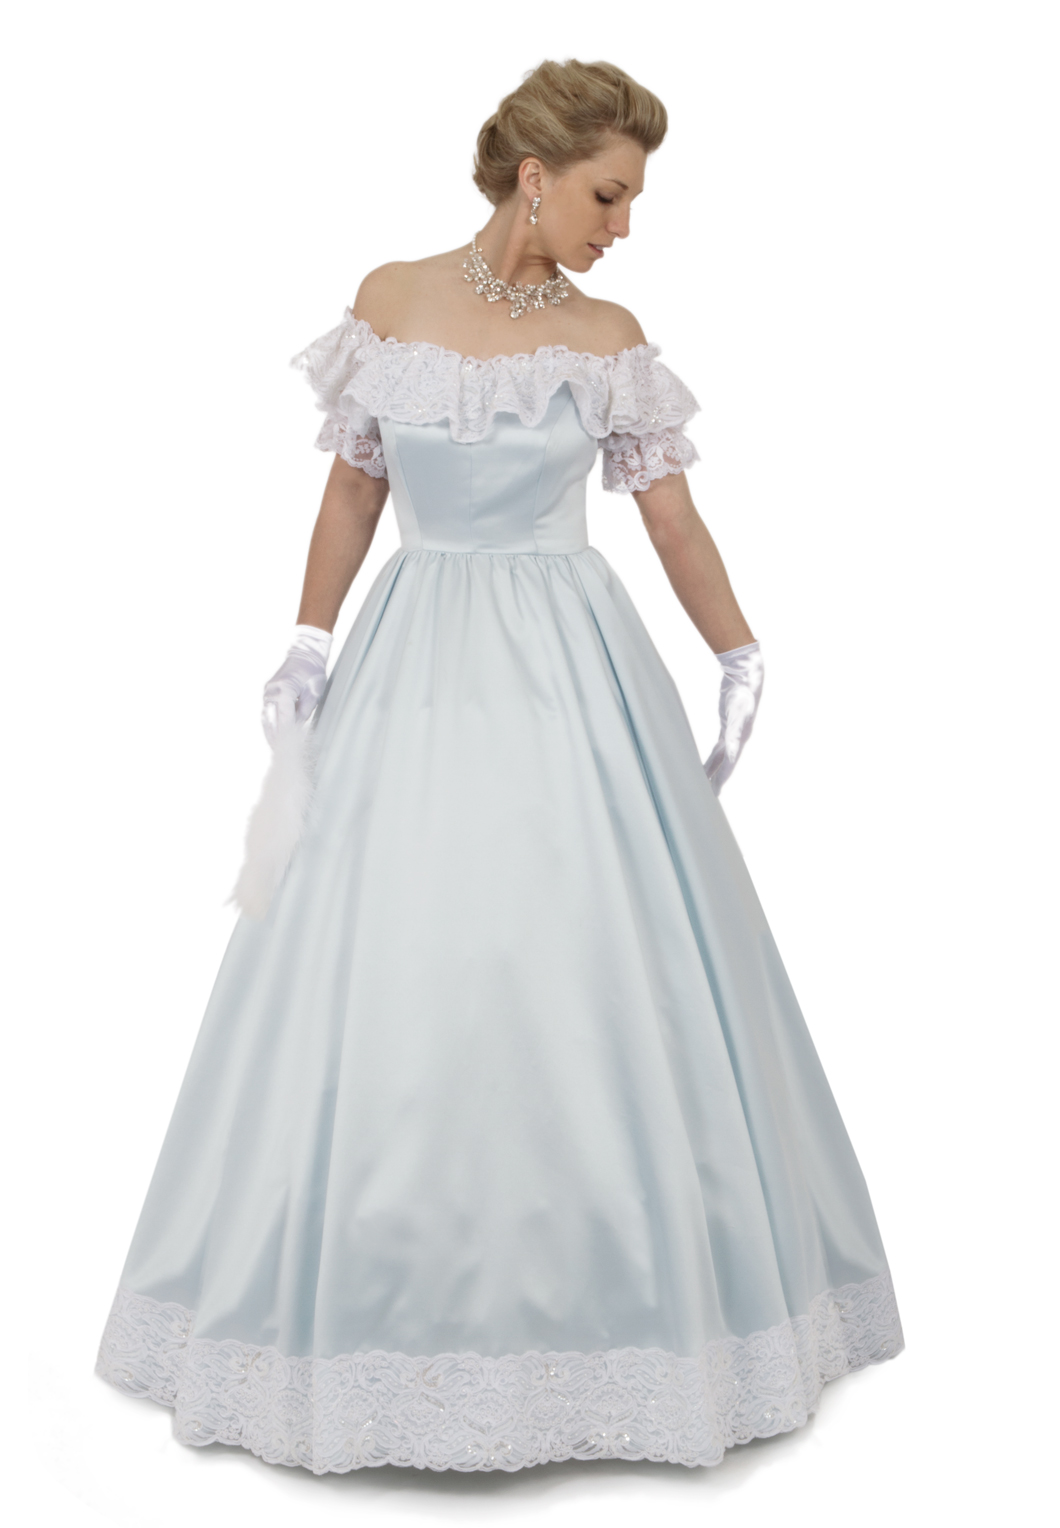 Melody Victorian Ball Gown Recollections